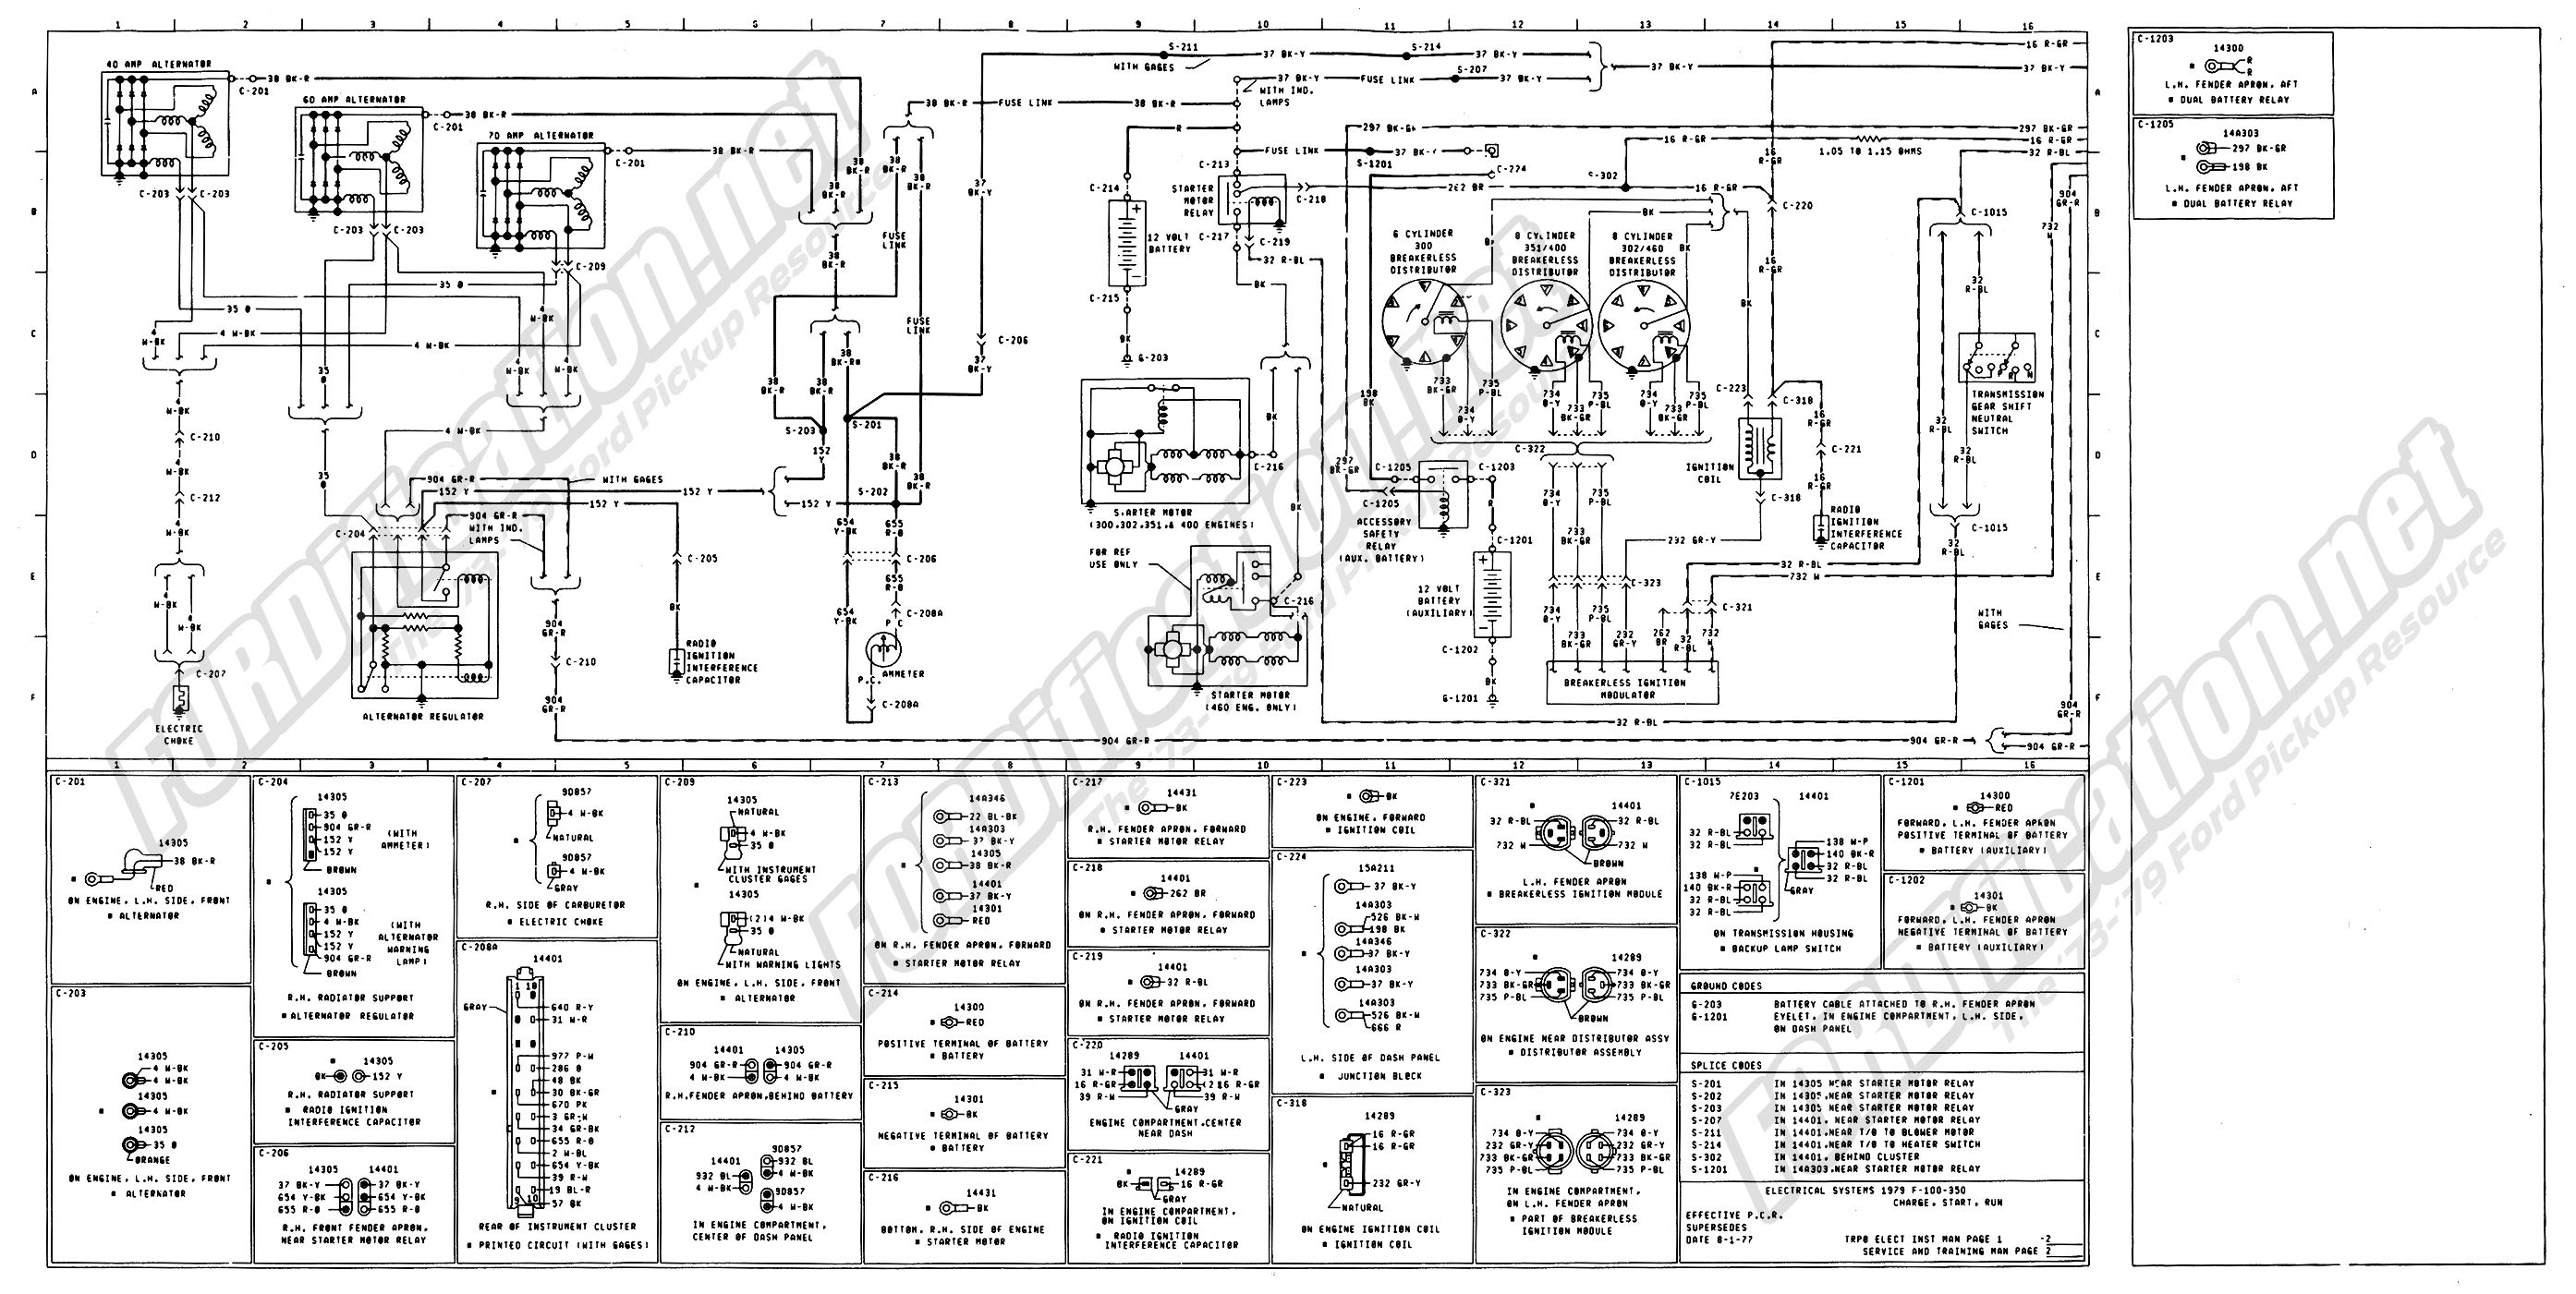 wiring_79master_2of9 72 f350 ignition question wiring ford truck enthusiasts forums Universal Ignition Switch Wiring Diagram at gsmportal.co